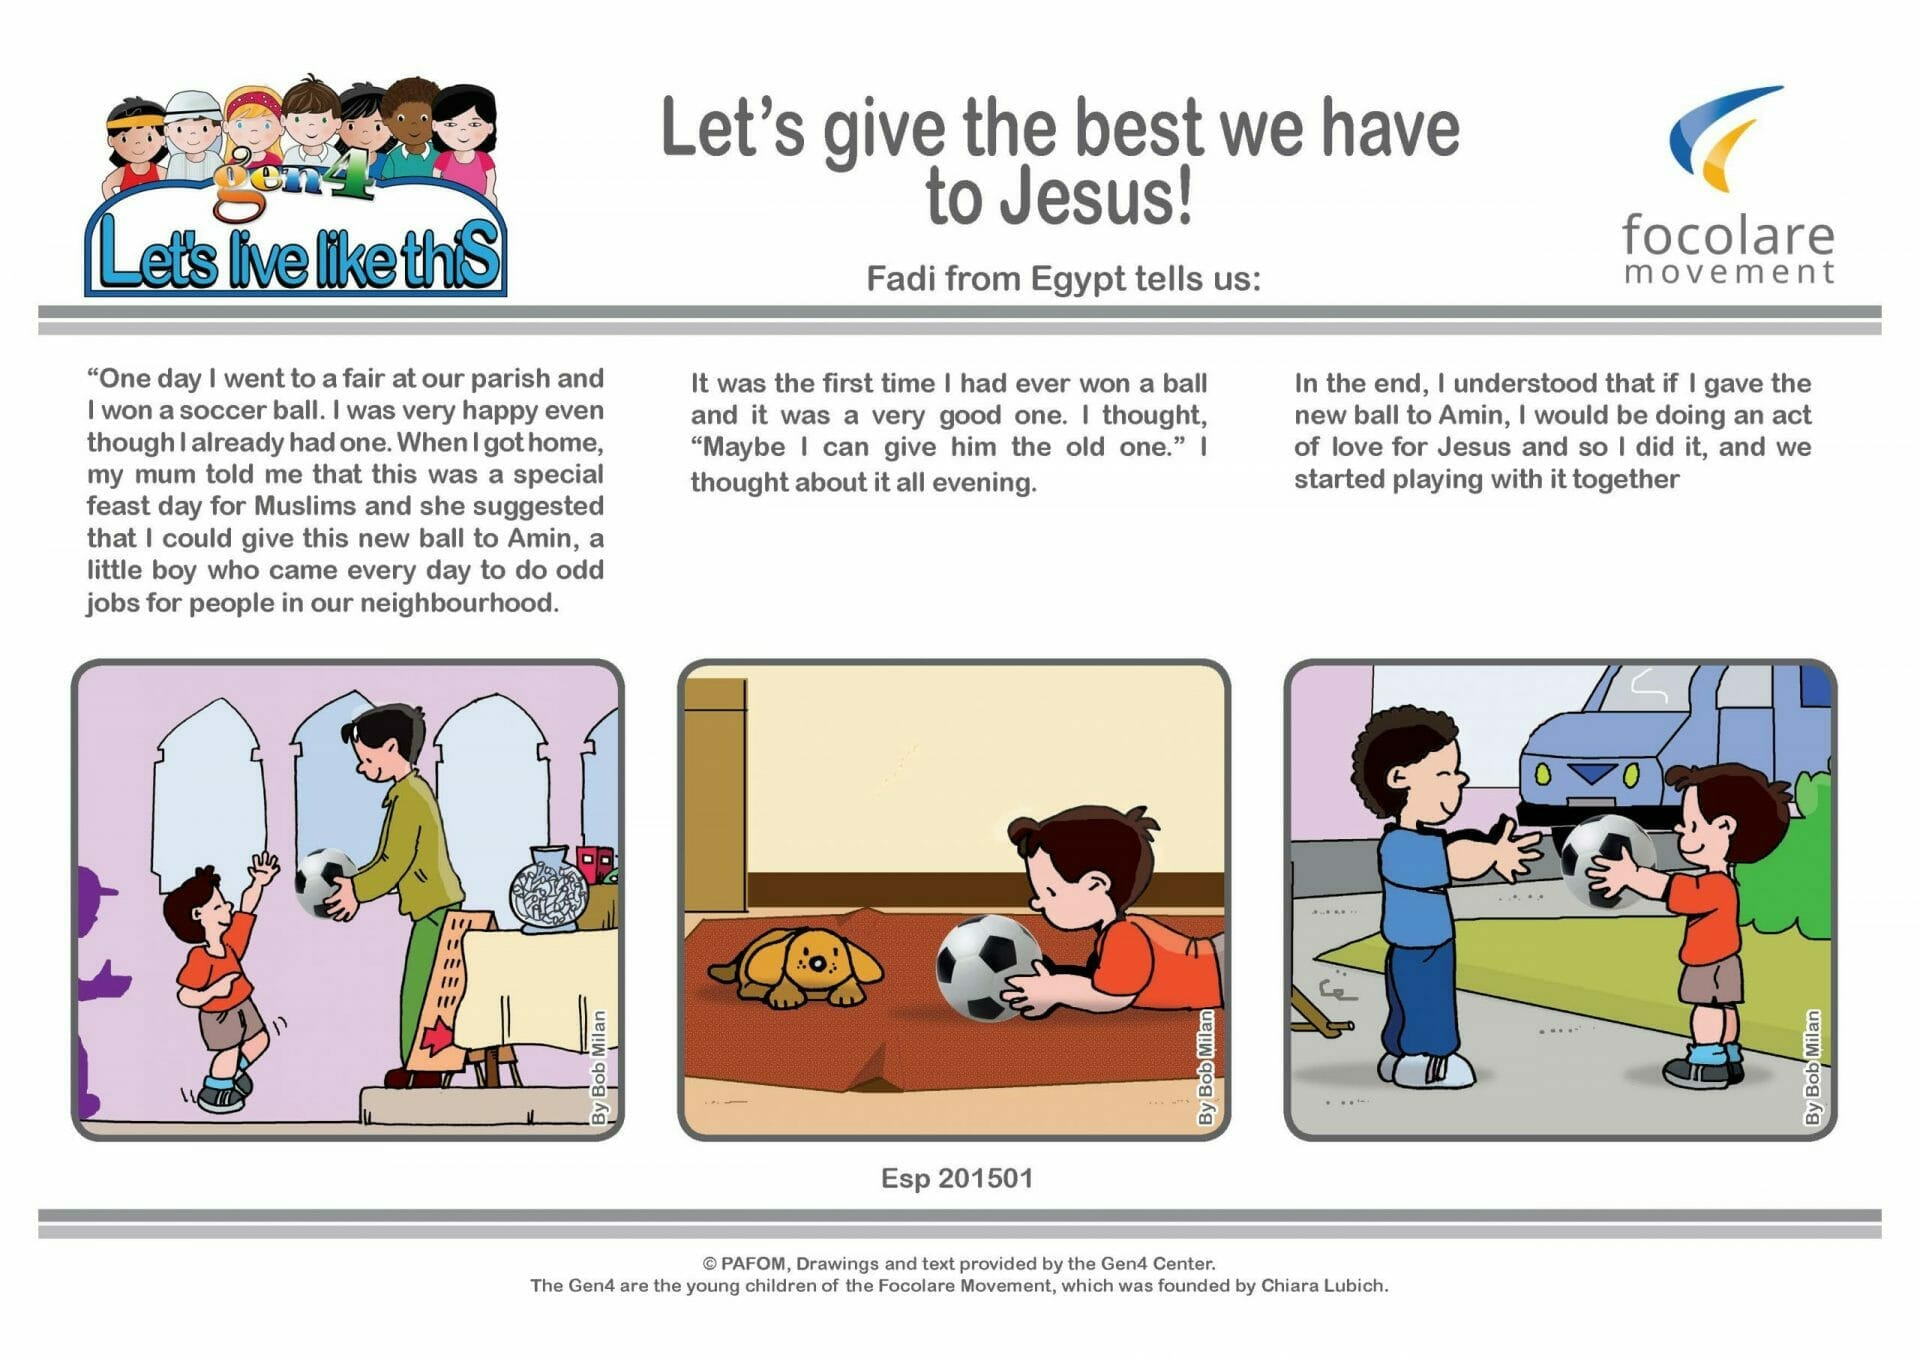 Let's give the best we have to Jesus!